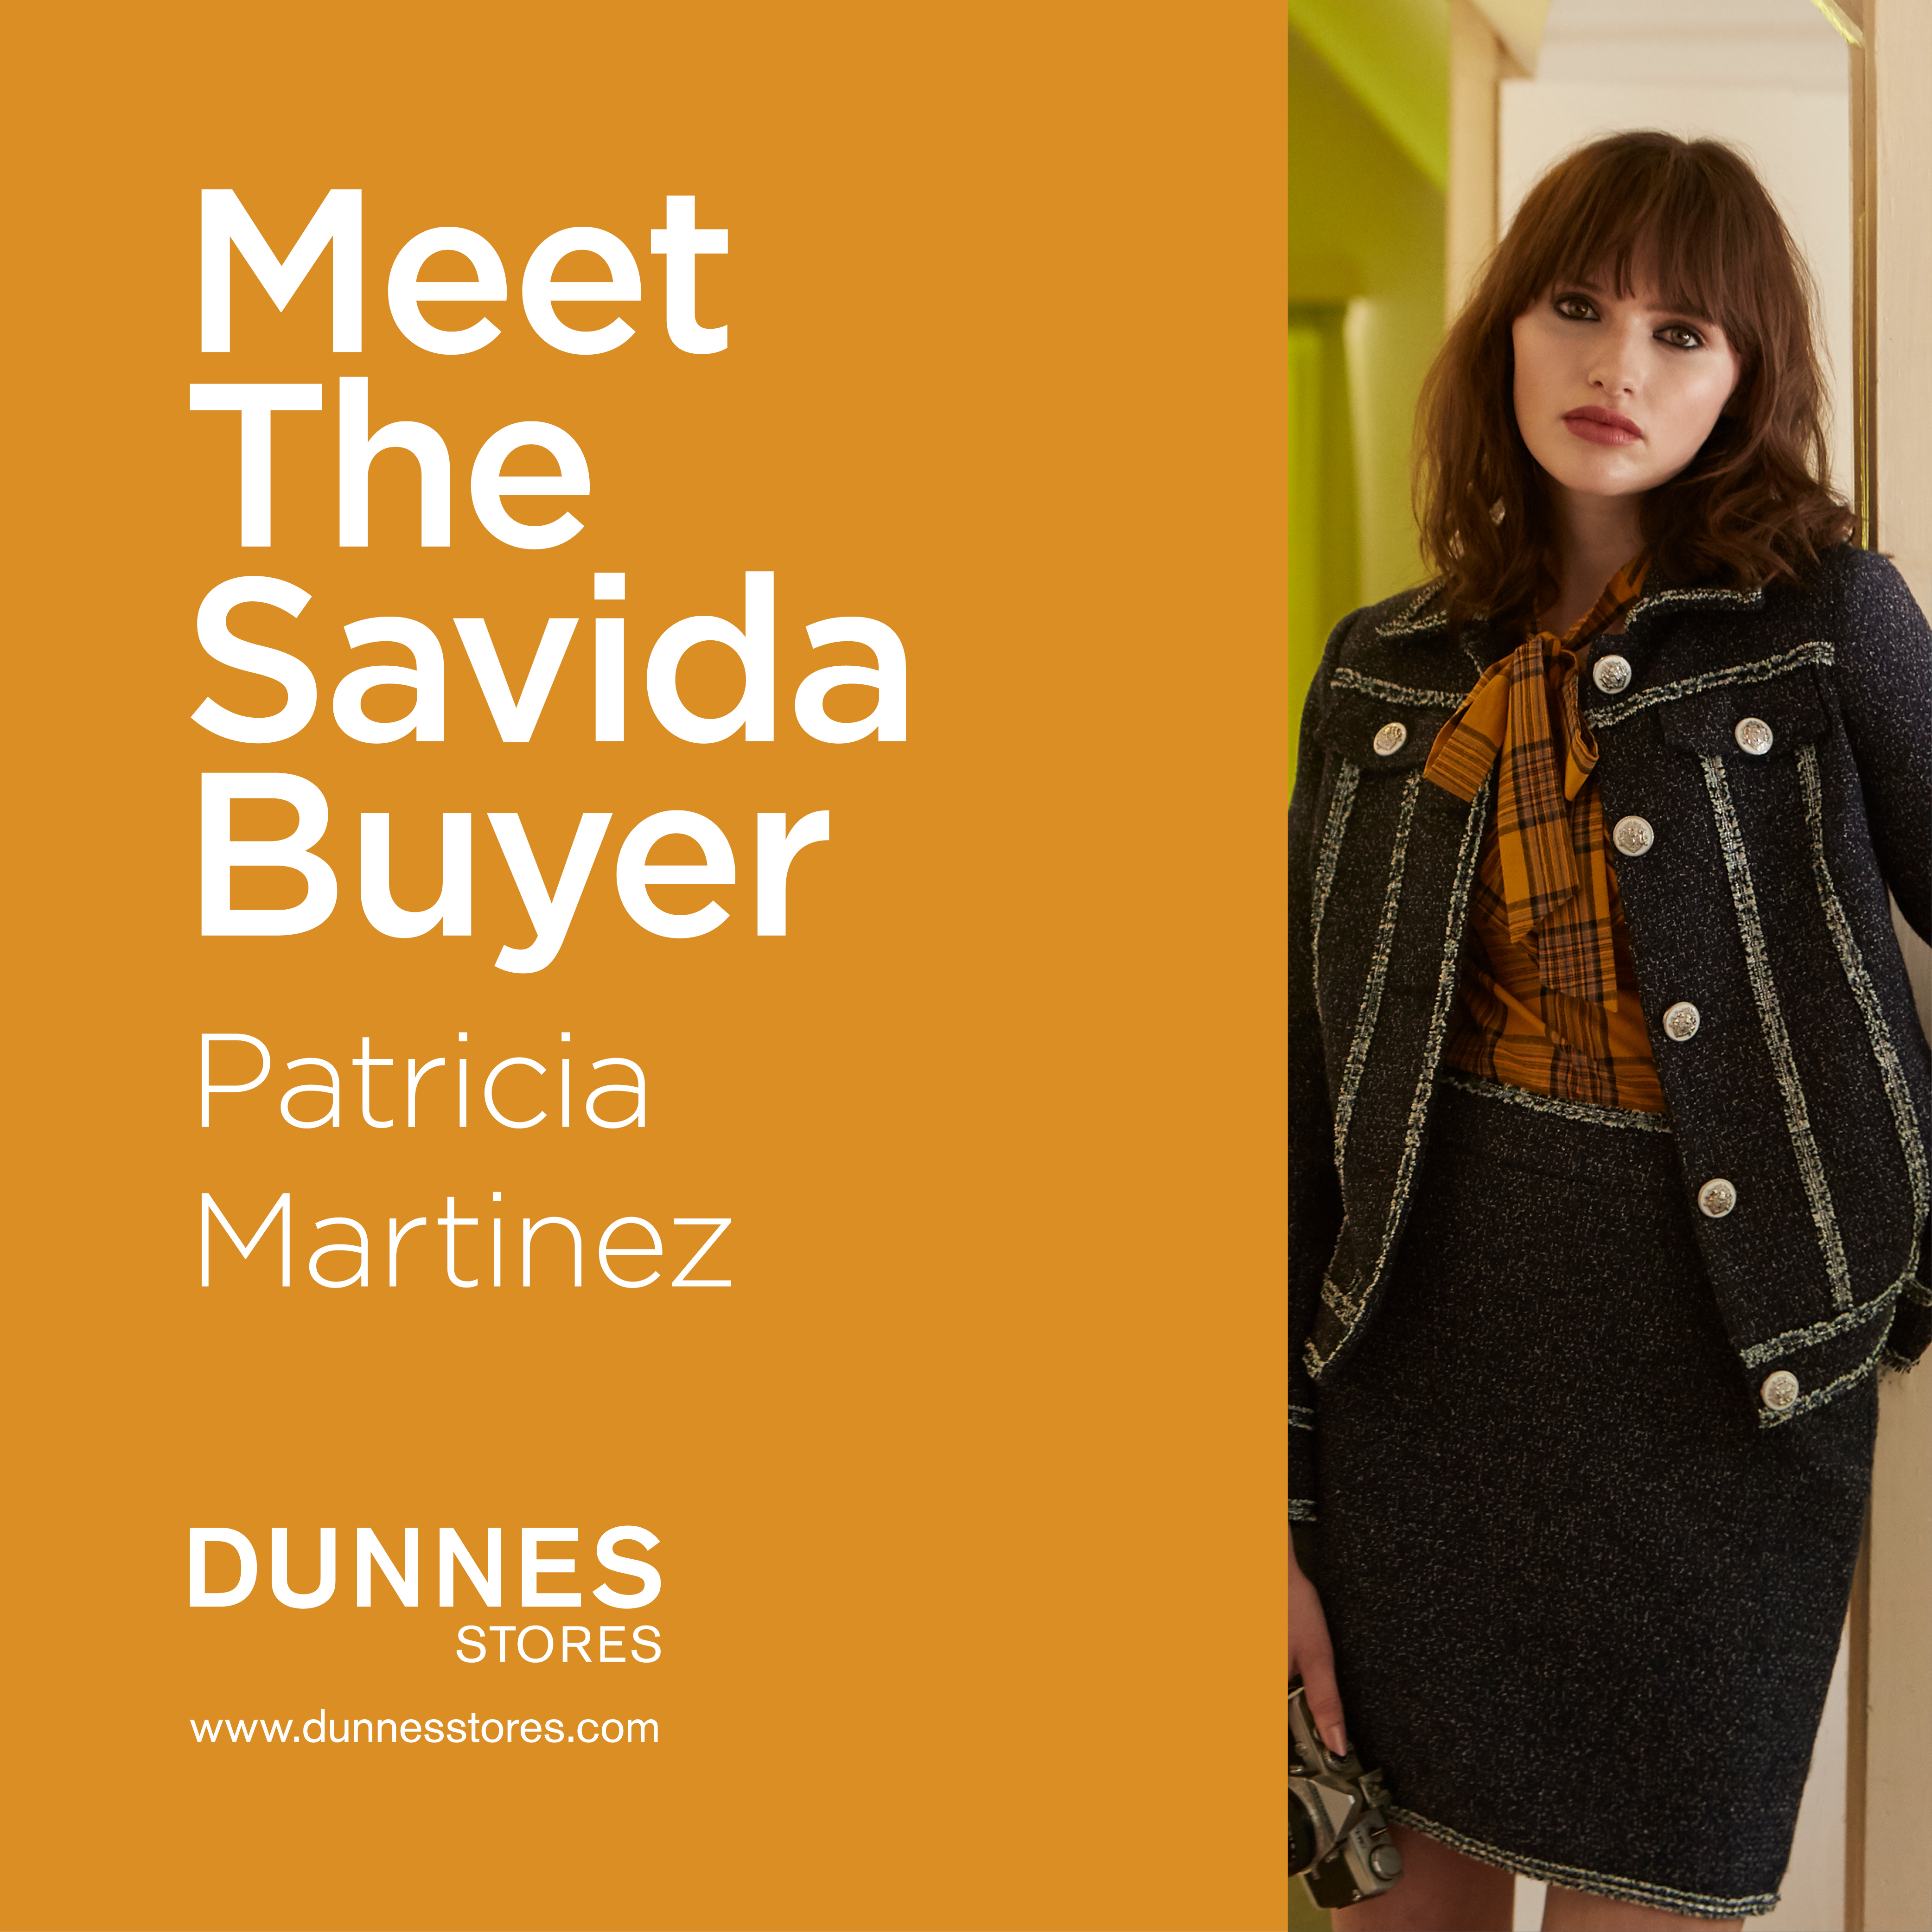 Join Savida buyer Patricia Martinez for an in-store workshop at Dunnes Stores Navan on Saturday the 18th of August from 11am-3pm, as she previews the new AW18 collection.